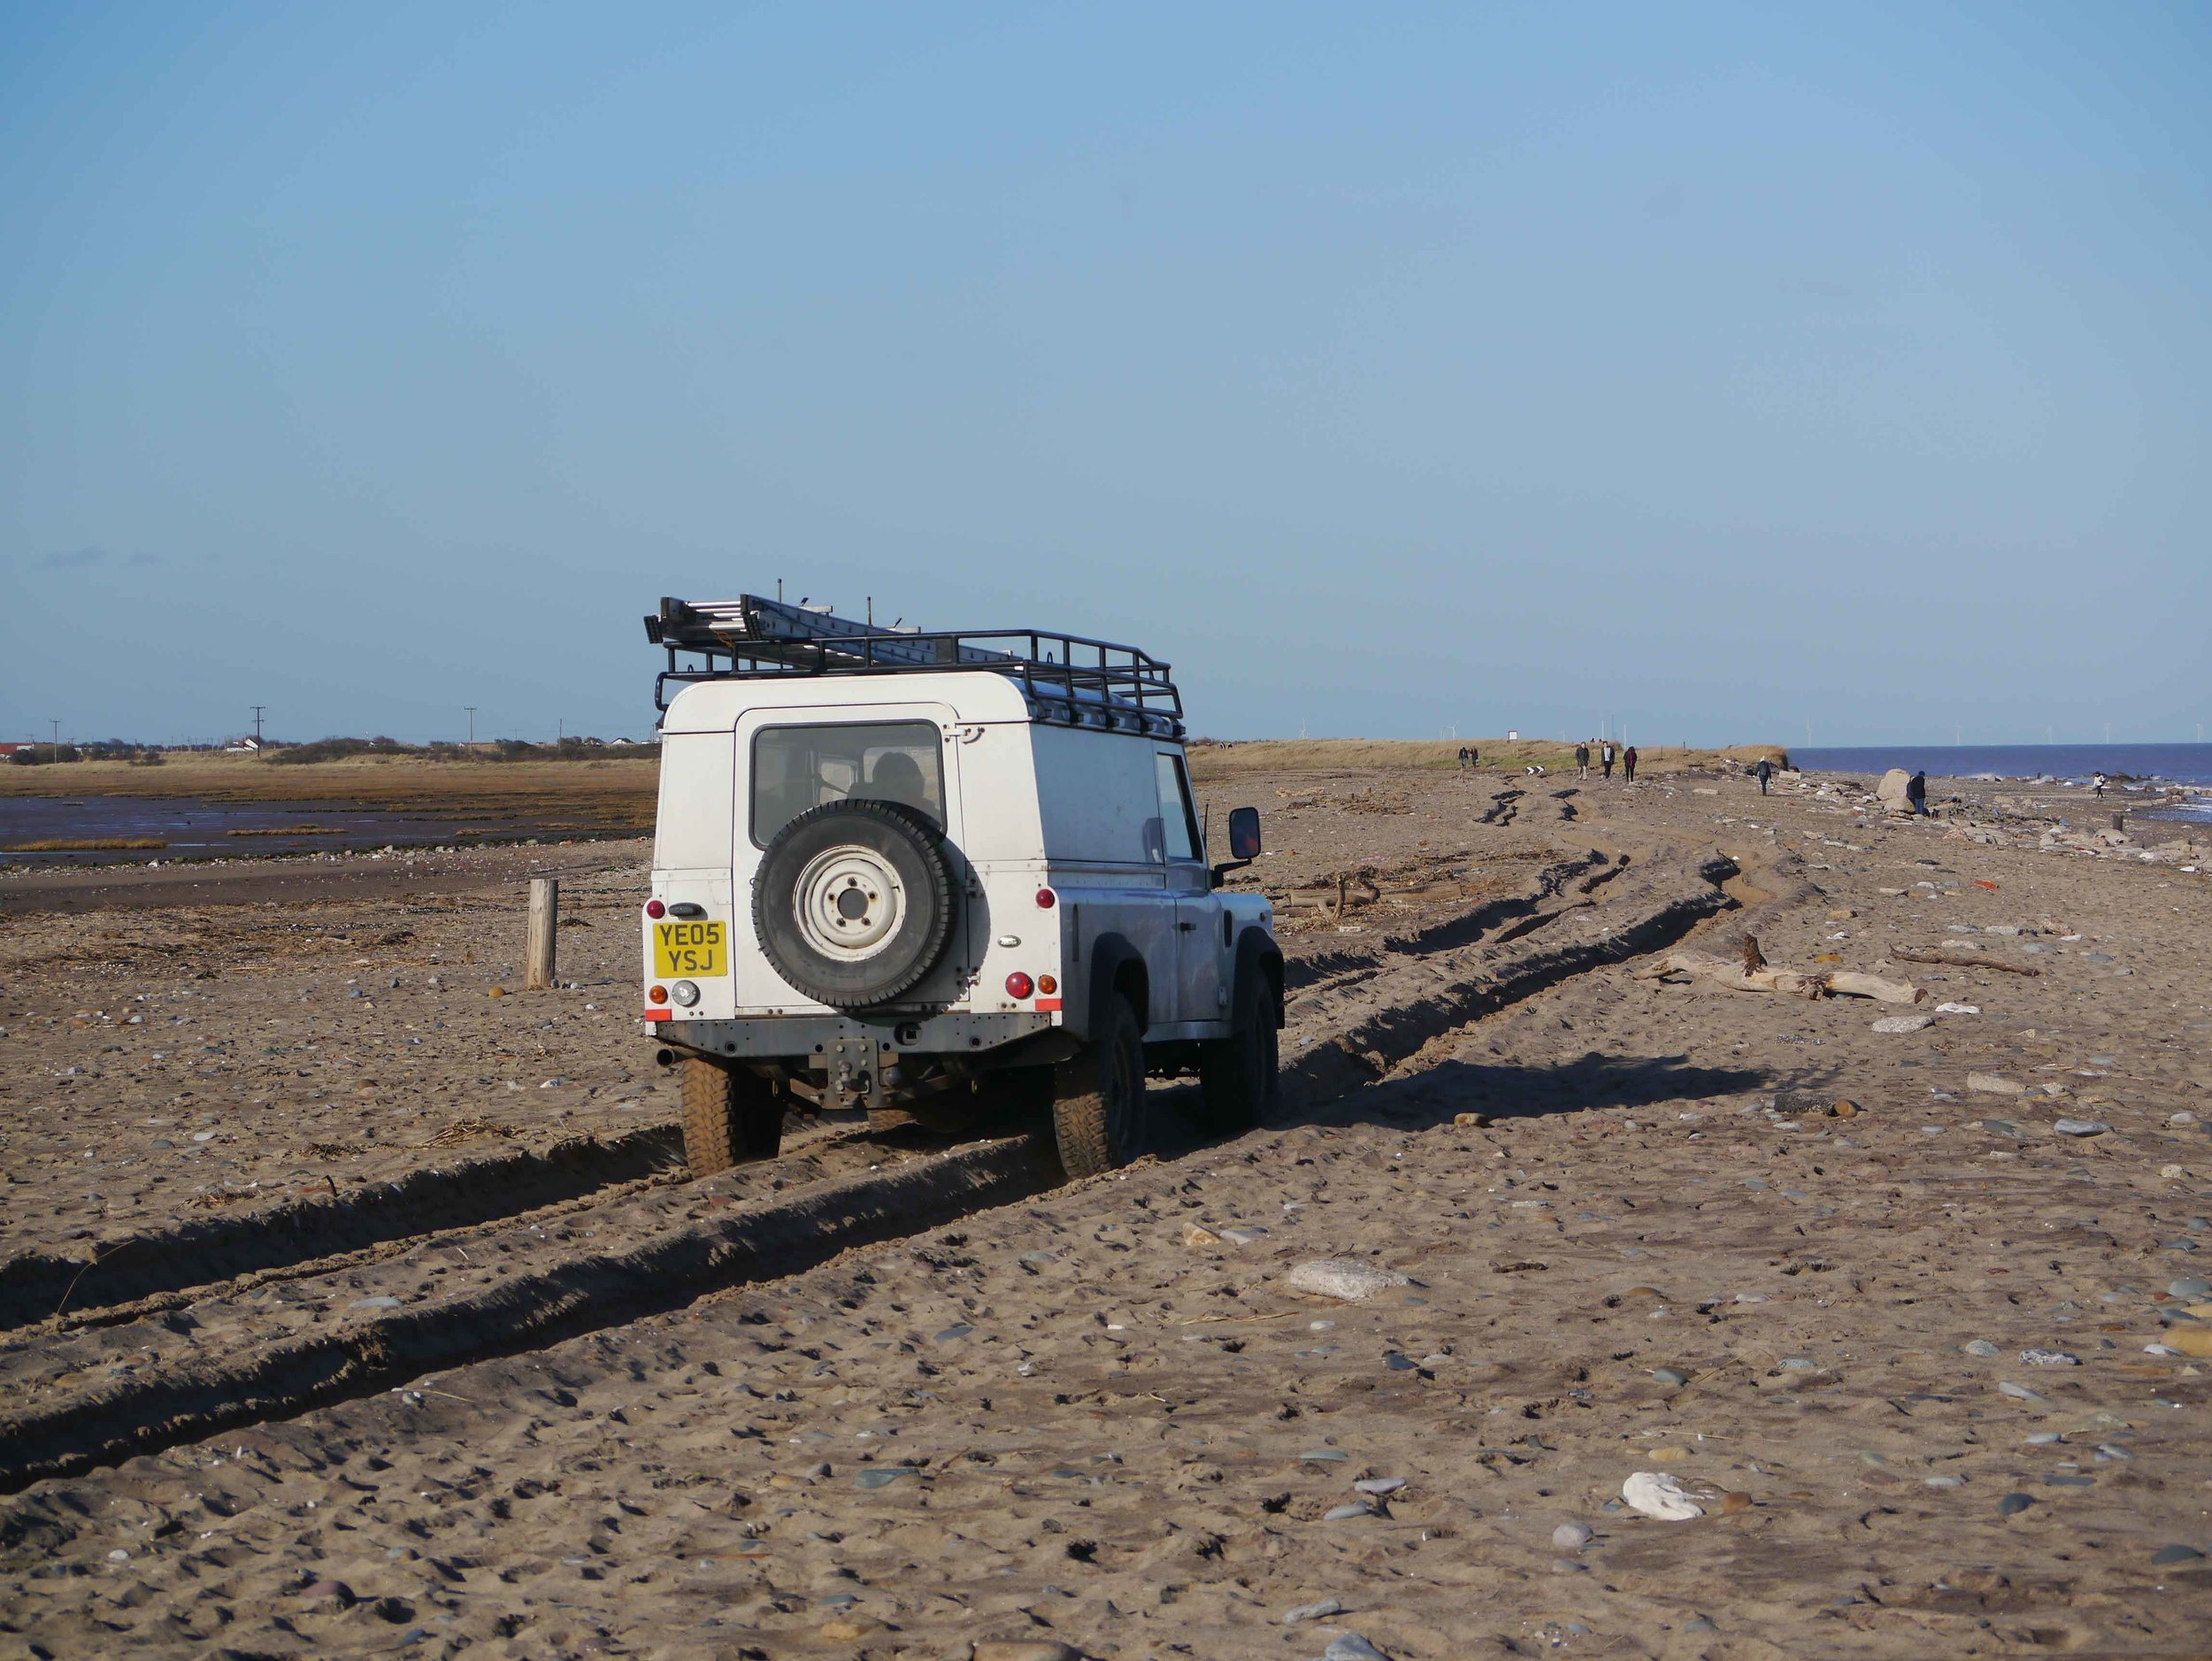 Spurn point land rover